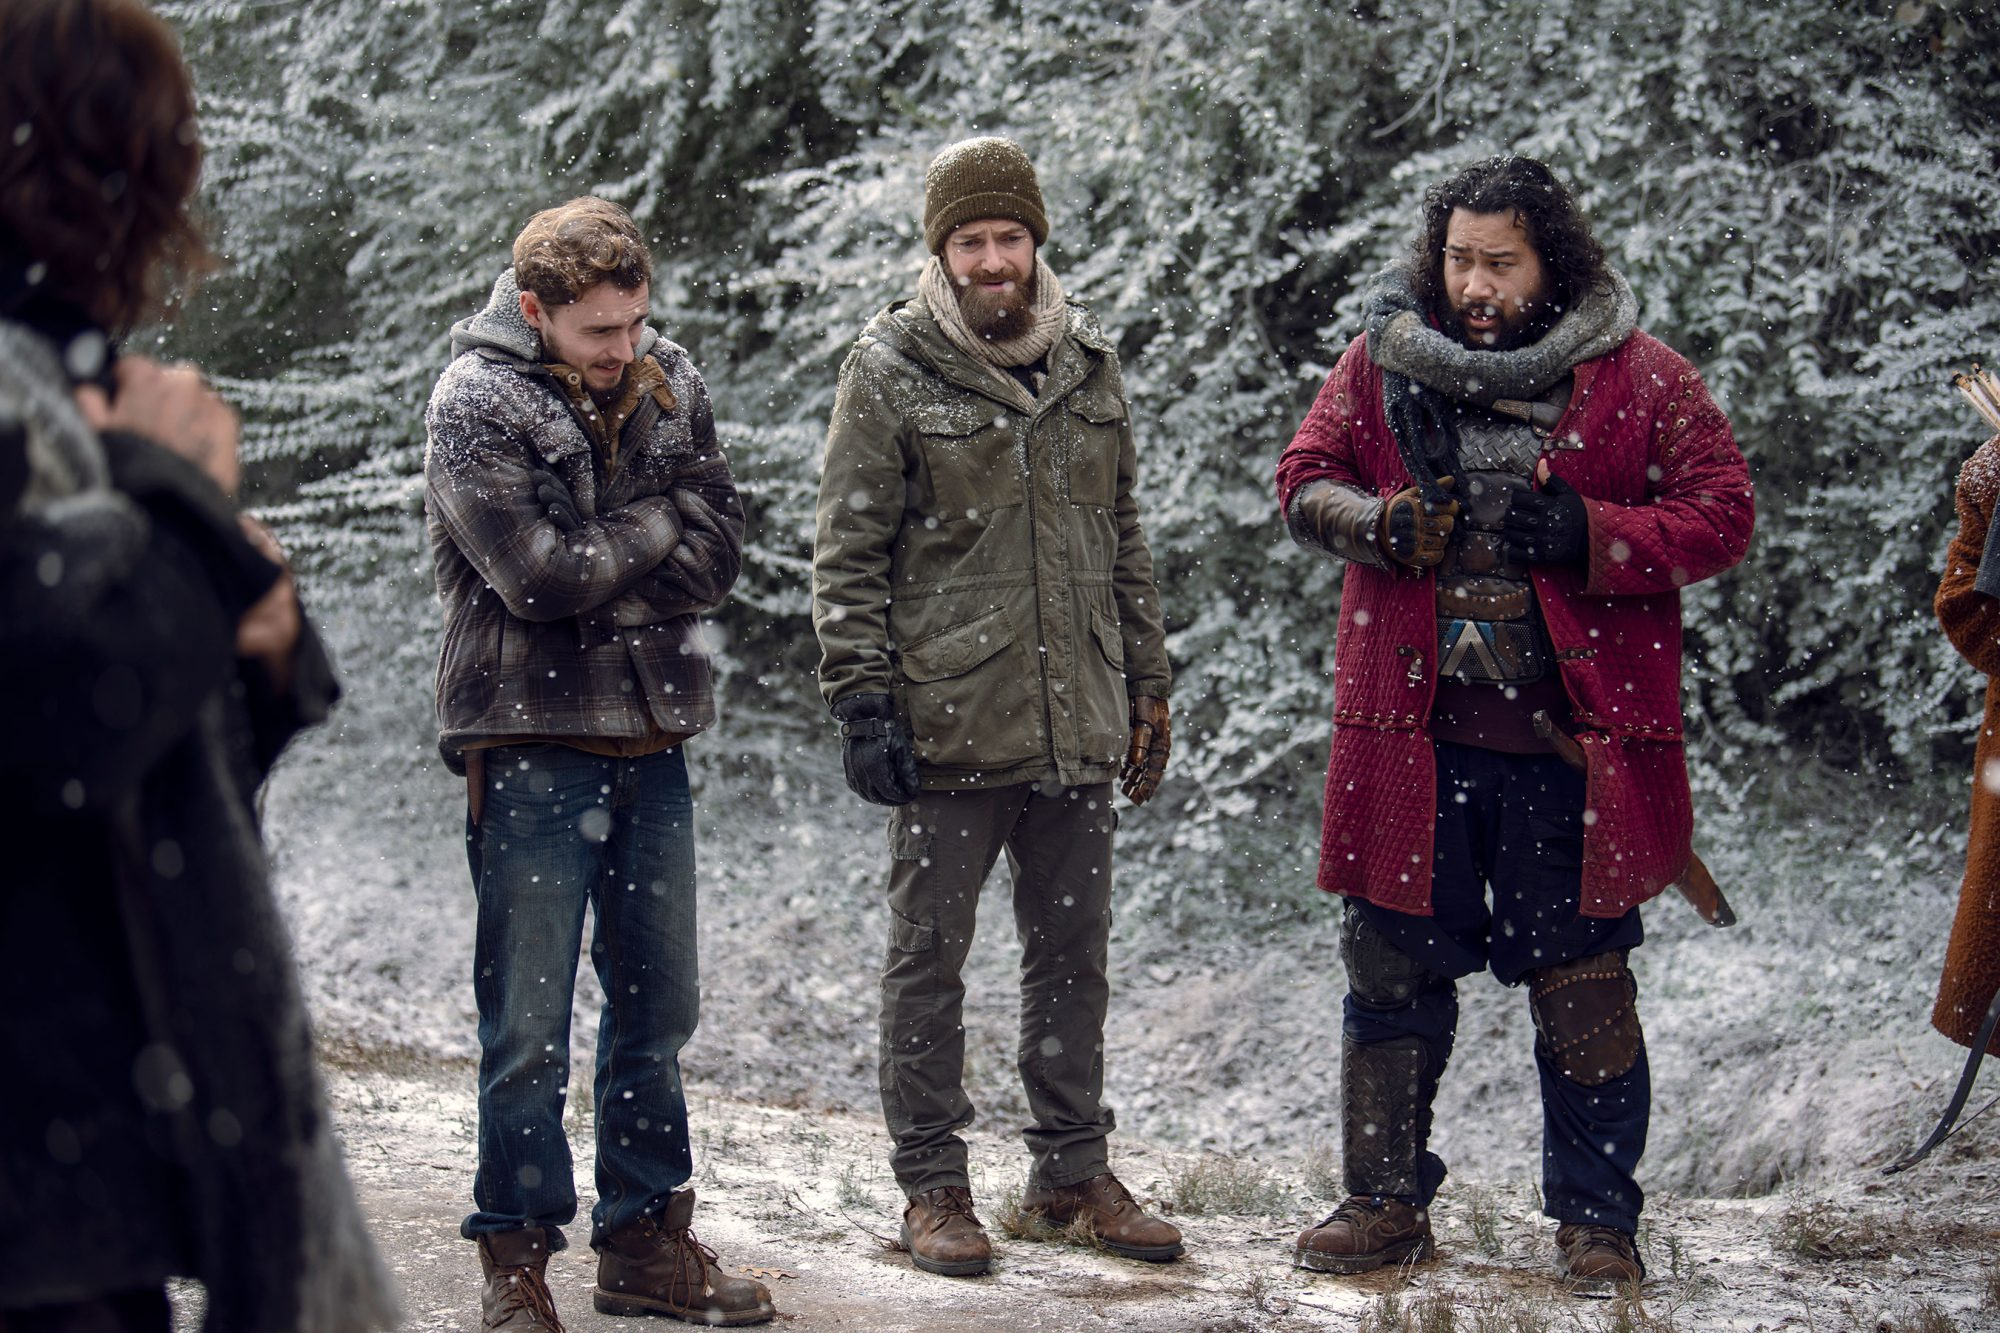 Callan McAuliffe as Alden, Ross Marquand as Aaron, Cooper Andrews as Jerry